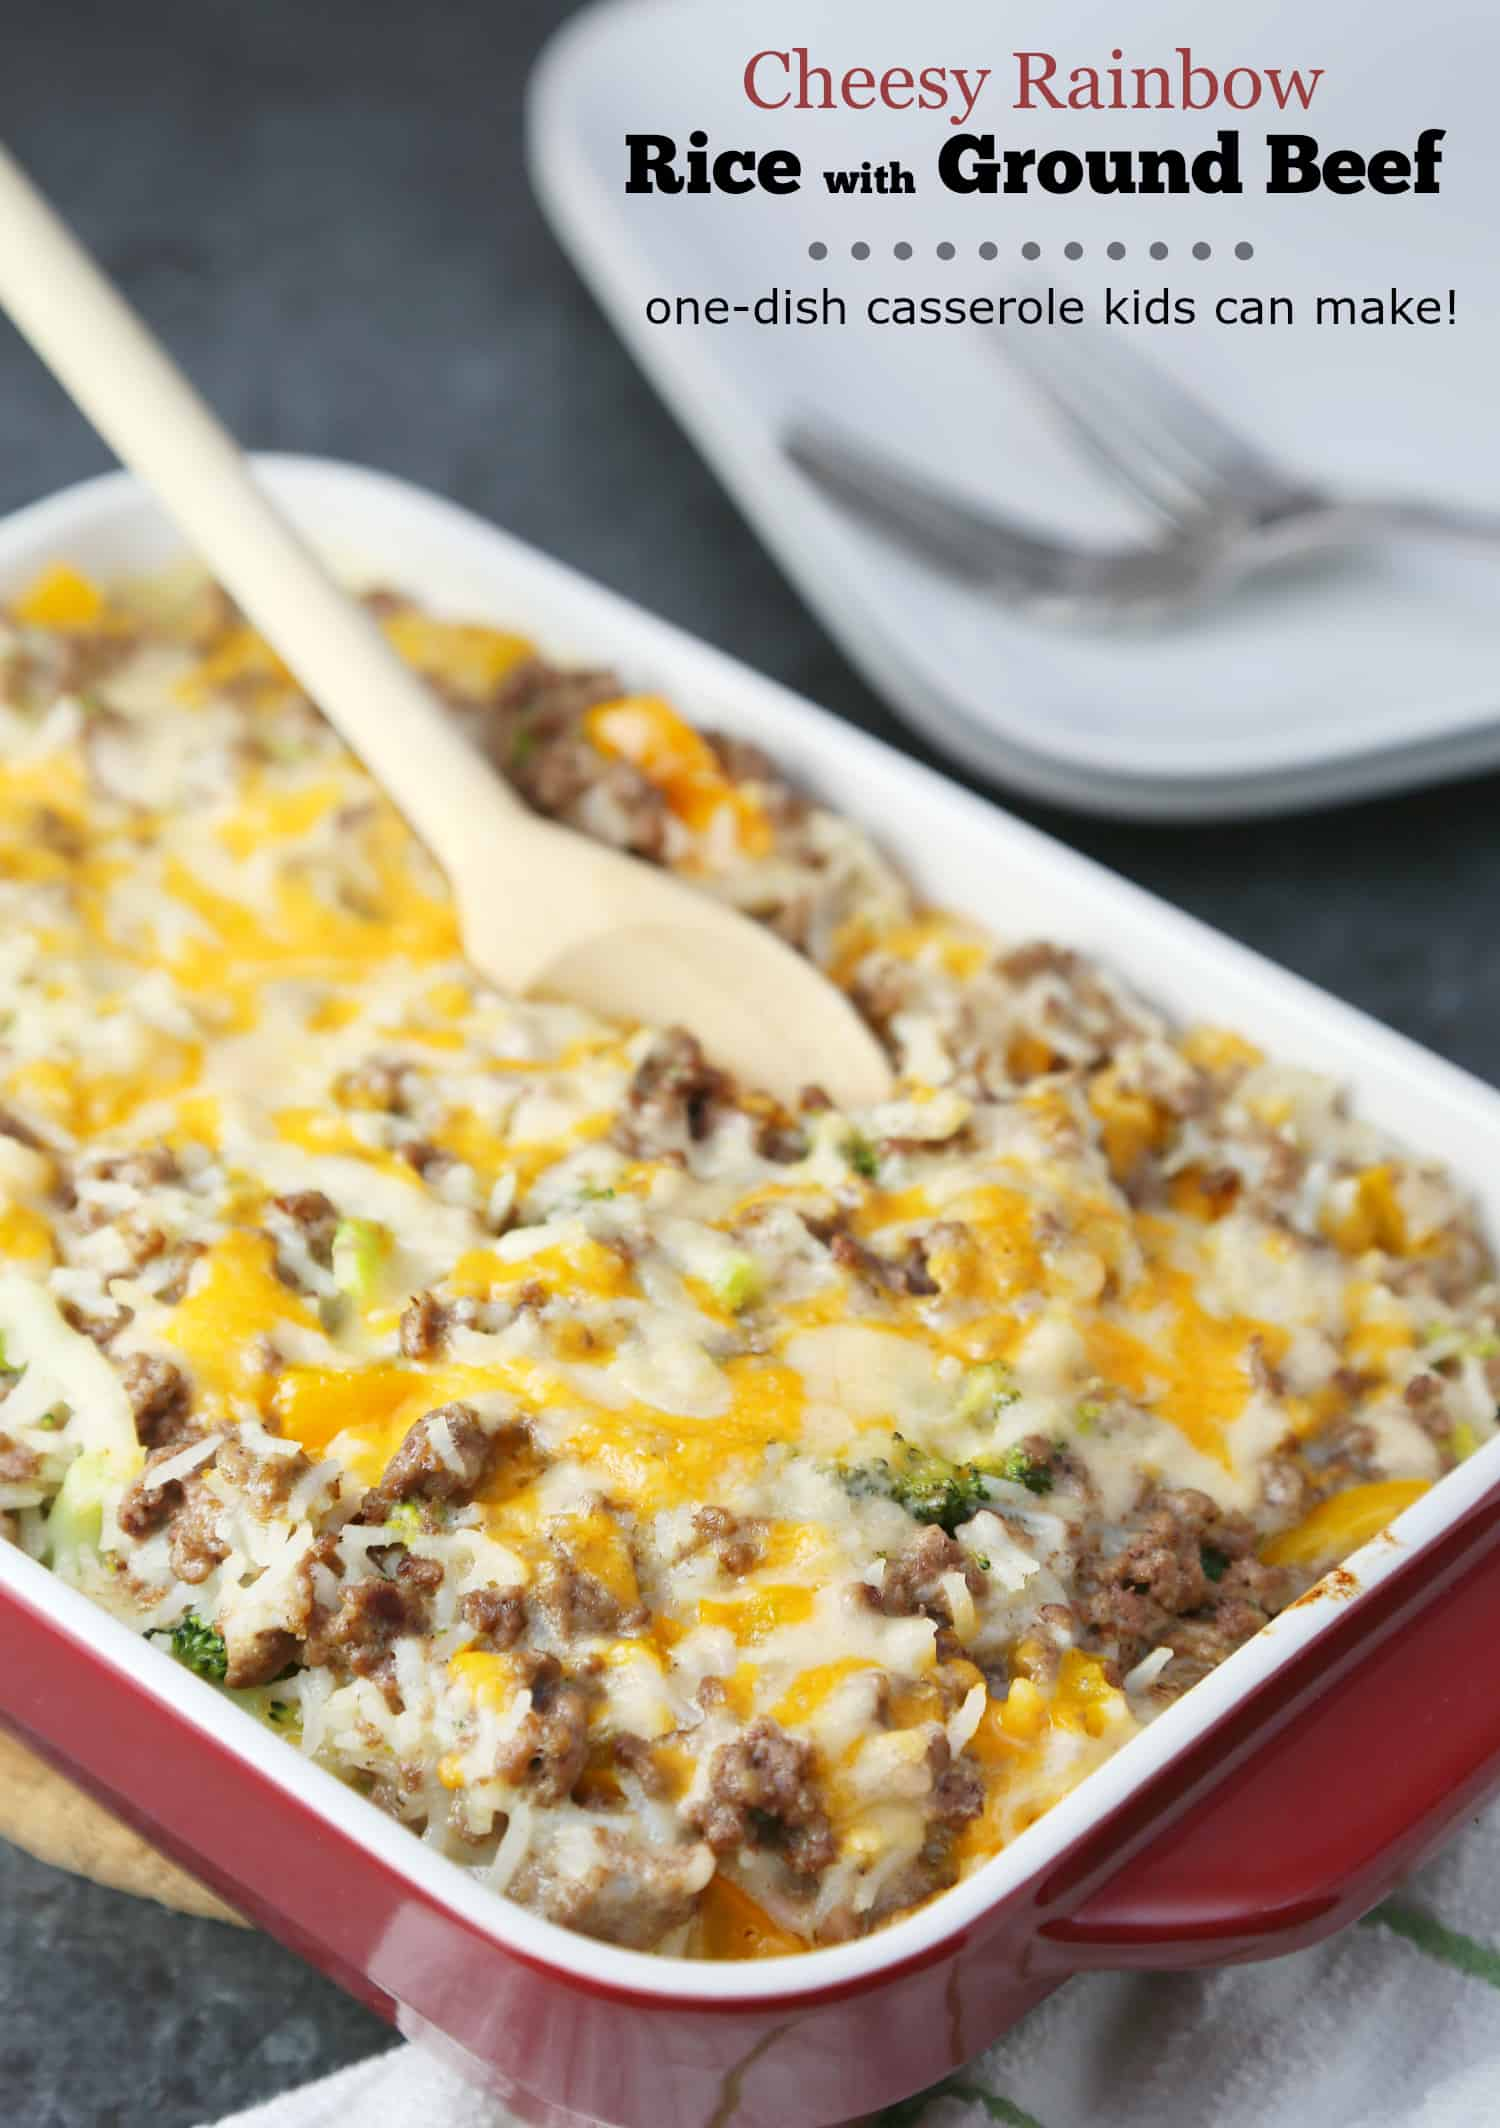 Cheesy Rainbow Rice with Ground BeefCheesy Rainbow Rice with Ground Beef